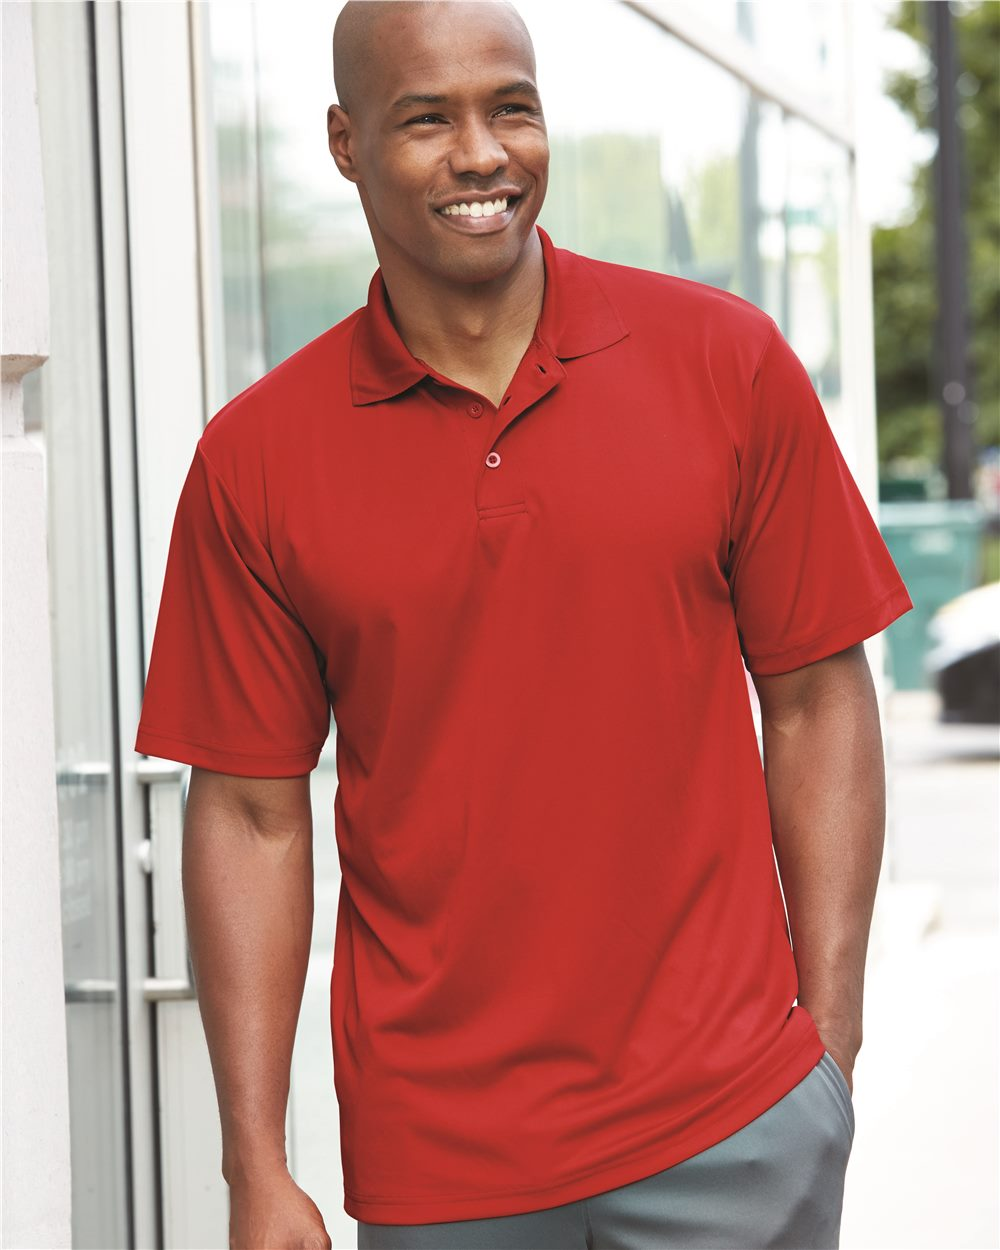 C2 Sport 5300 - Performance Sport Shirt